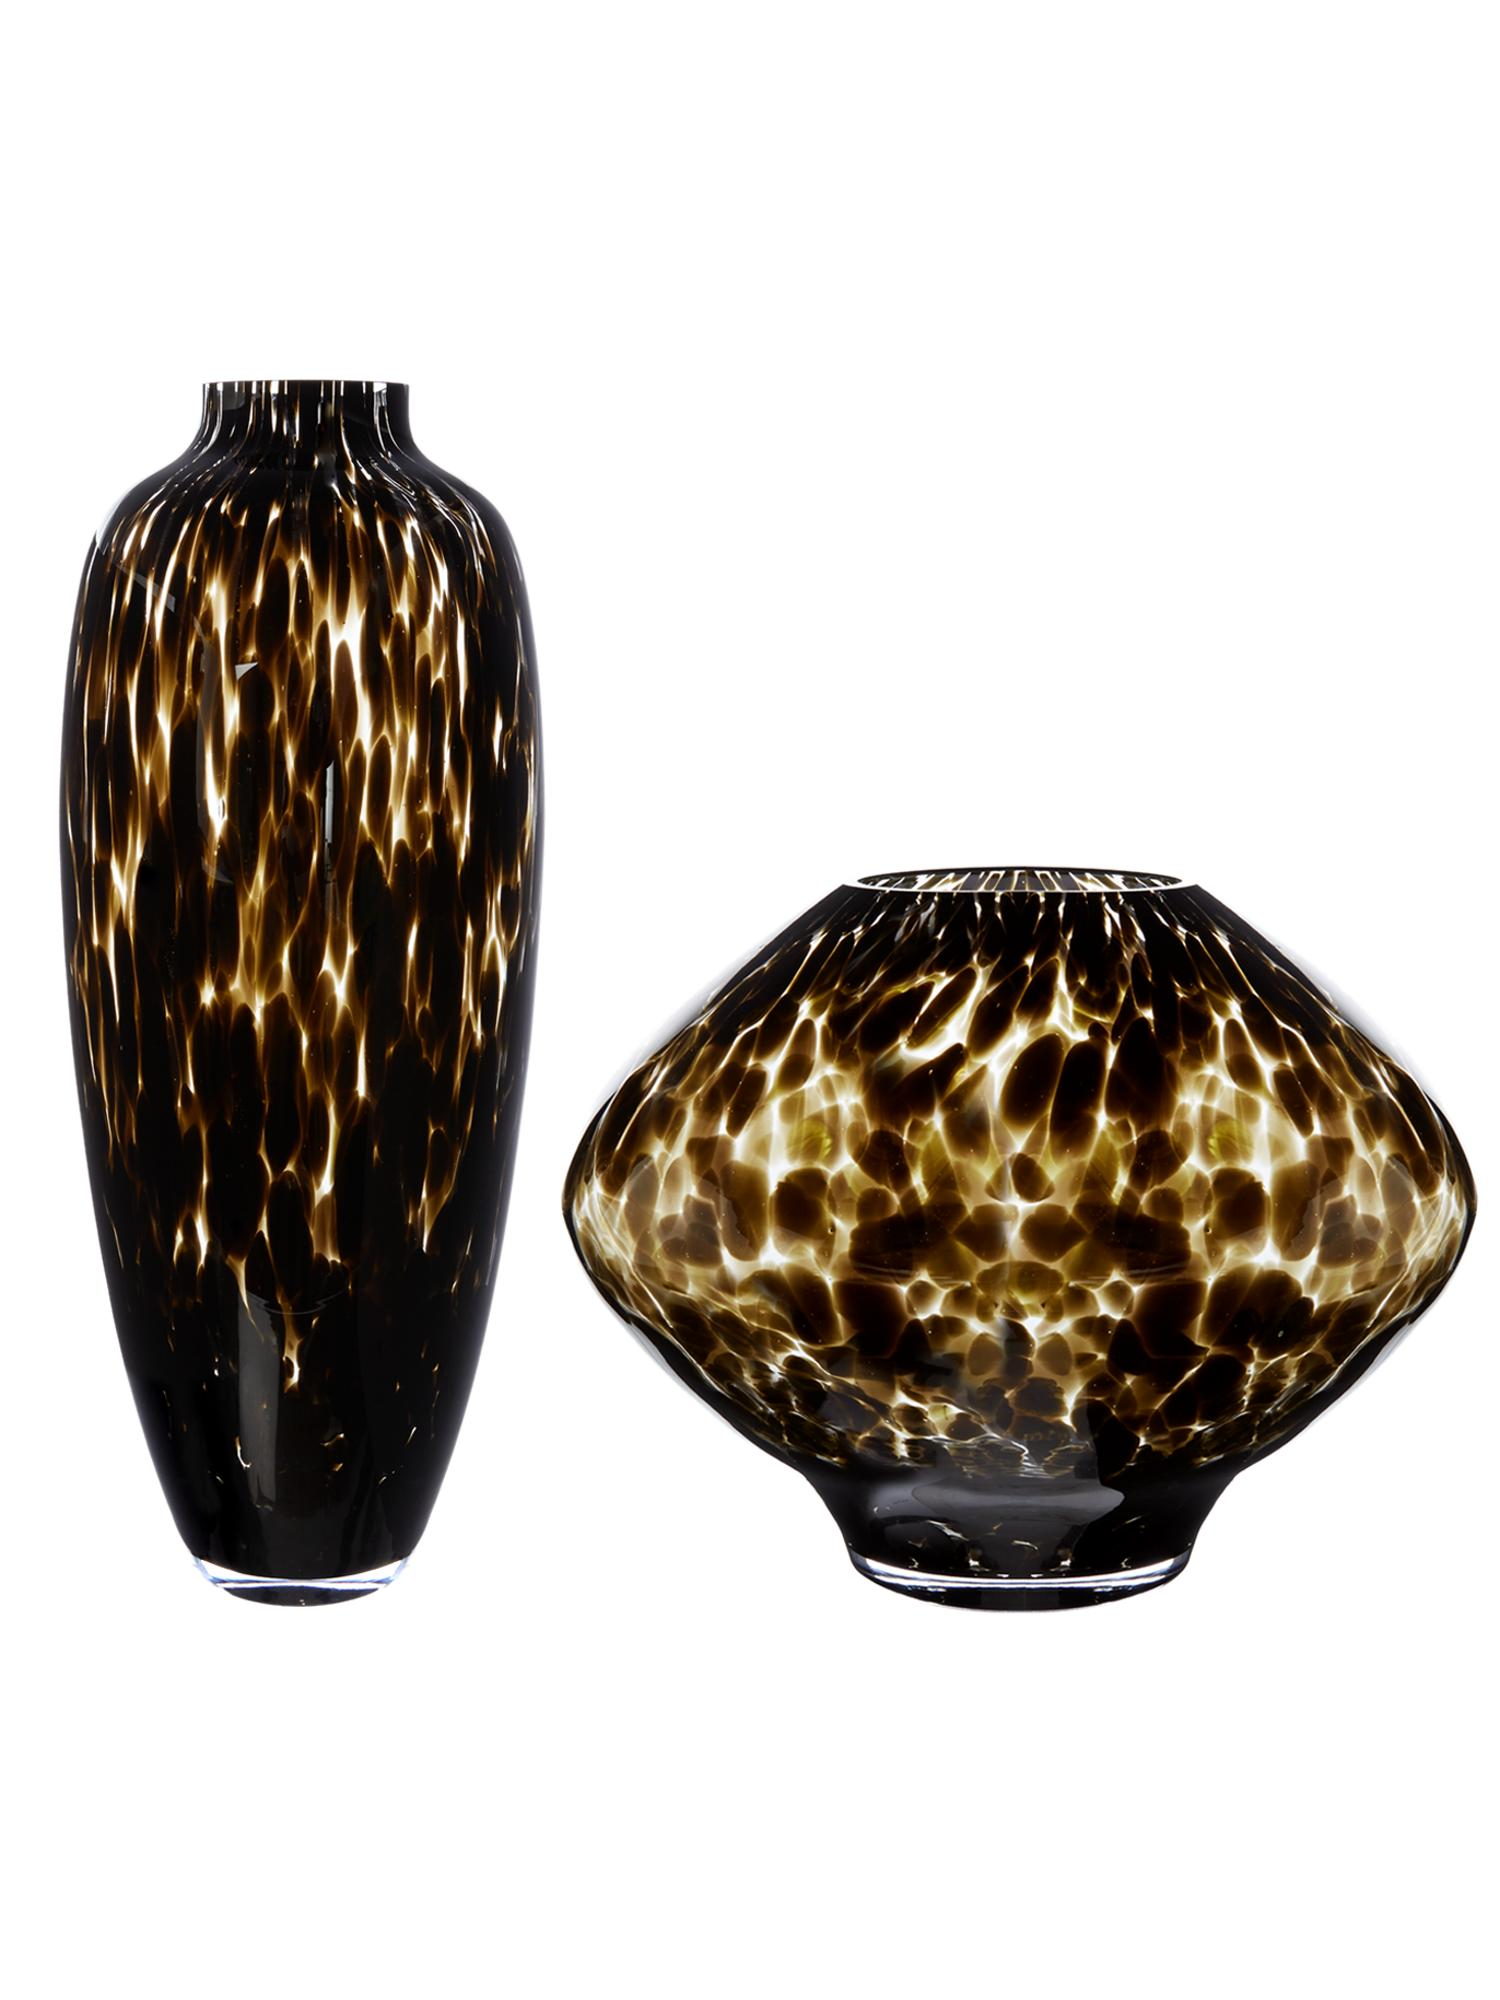 Bright vases trays dishes aroma lamps mirrors in beautiful frames - Biba Leopard Vases Range